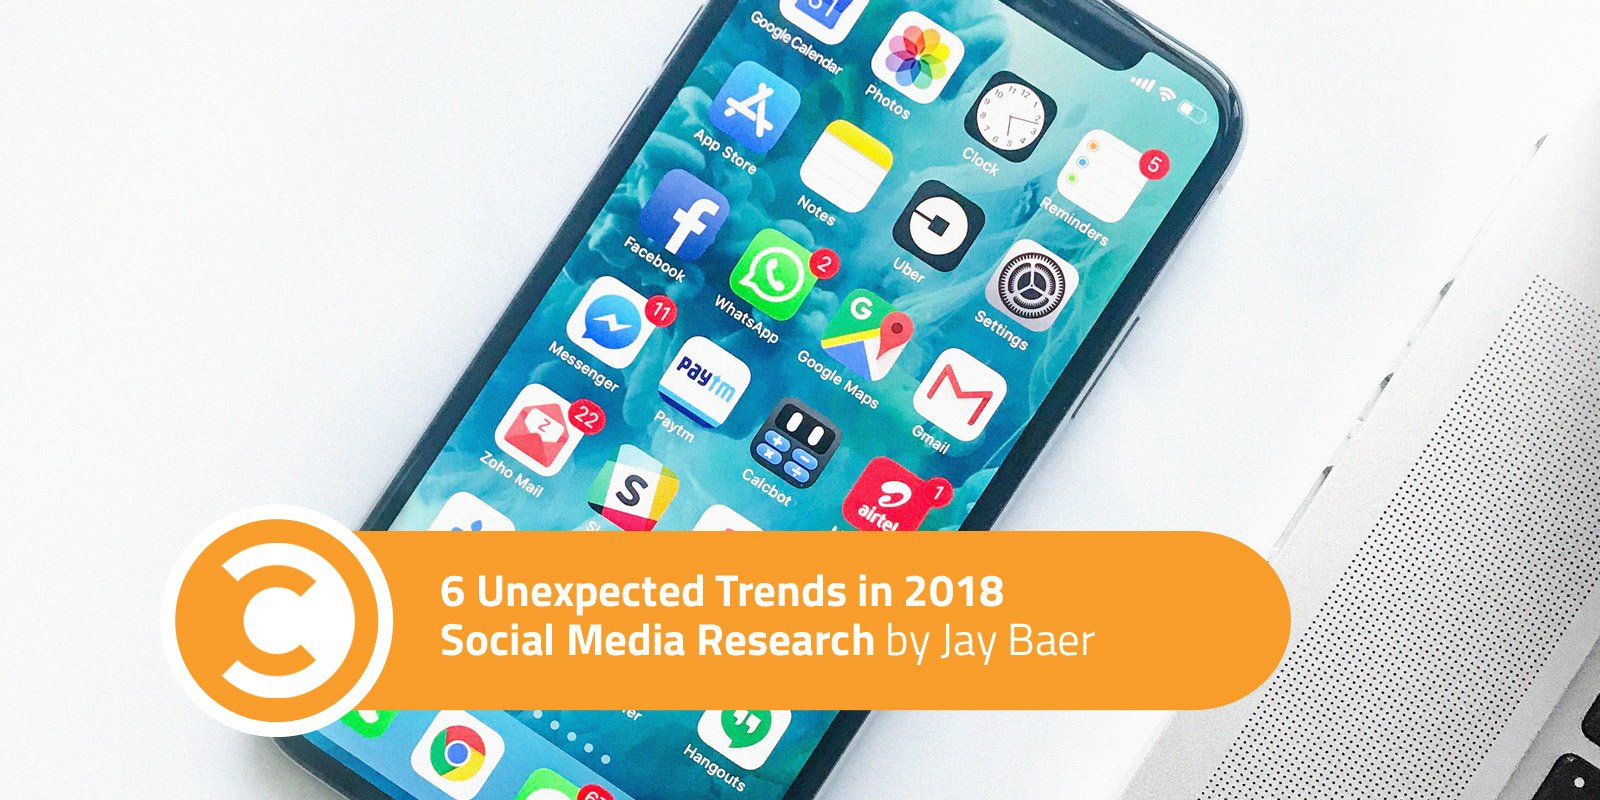 6-Unexpected-Trends-in-2018-Social-Media-Research.jpg